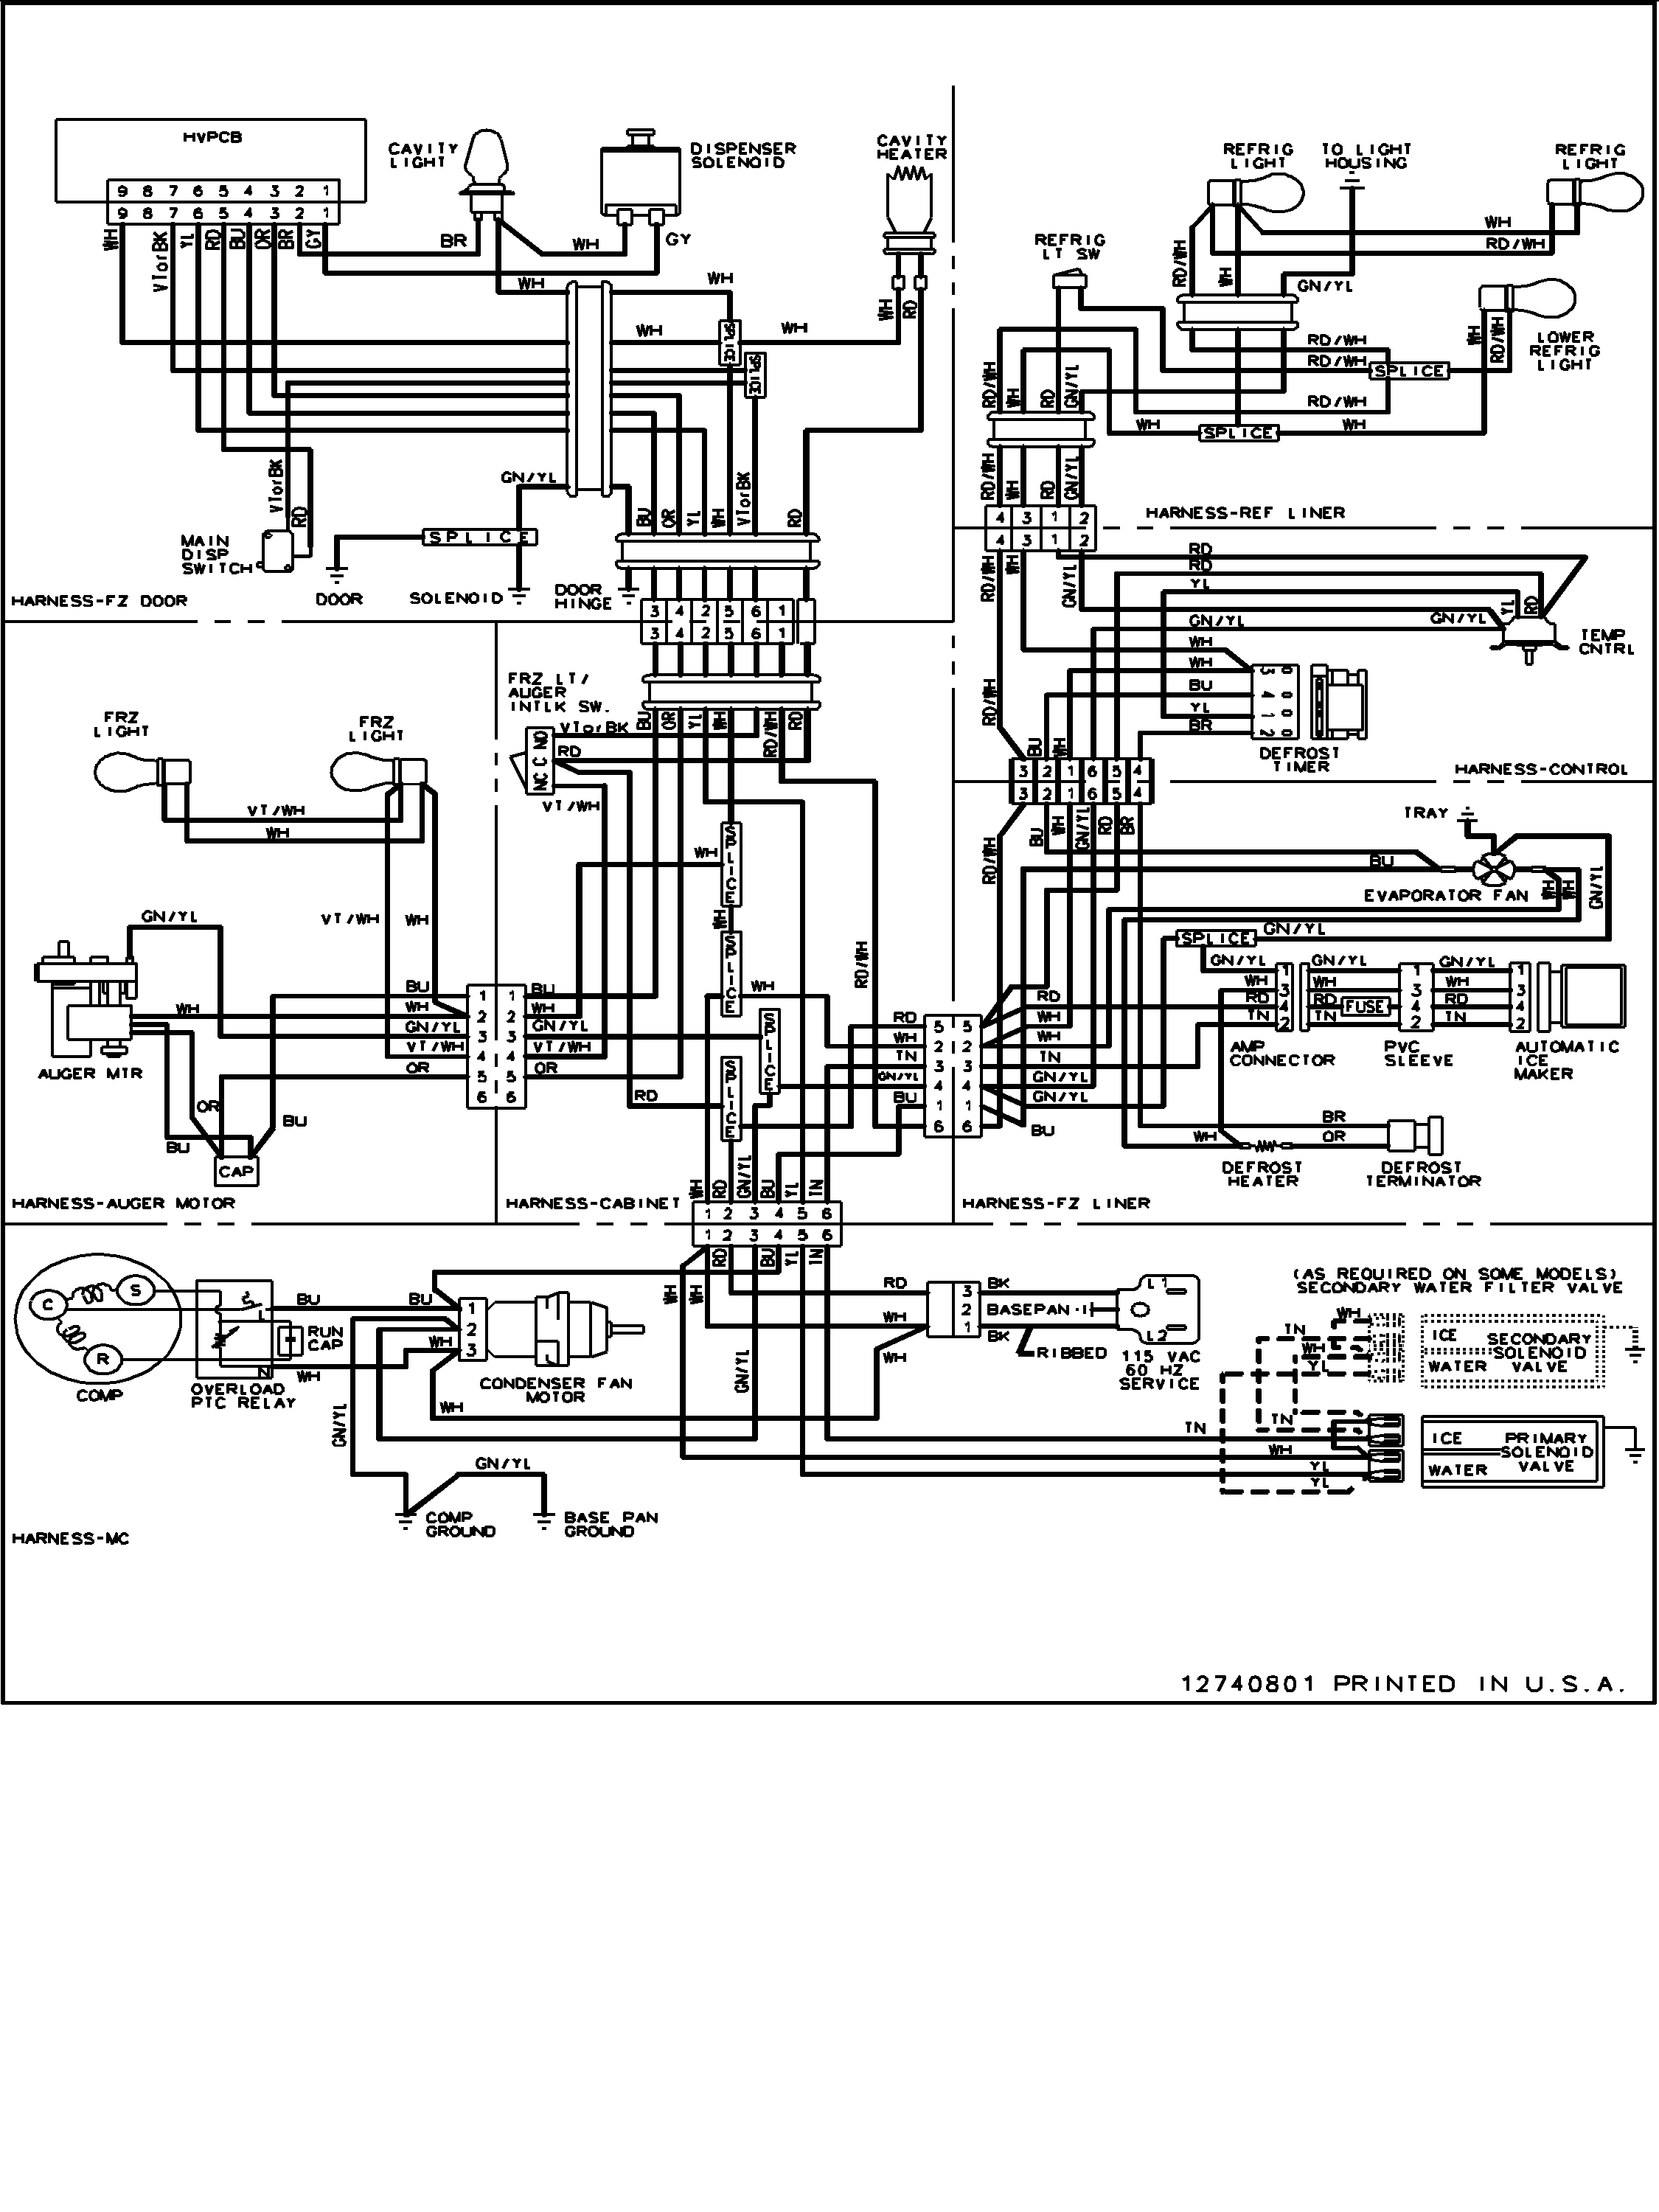 Refrigerator Thermostat Wiring Diagram